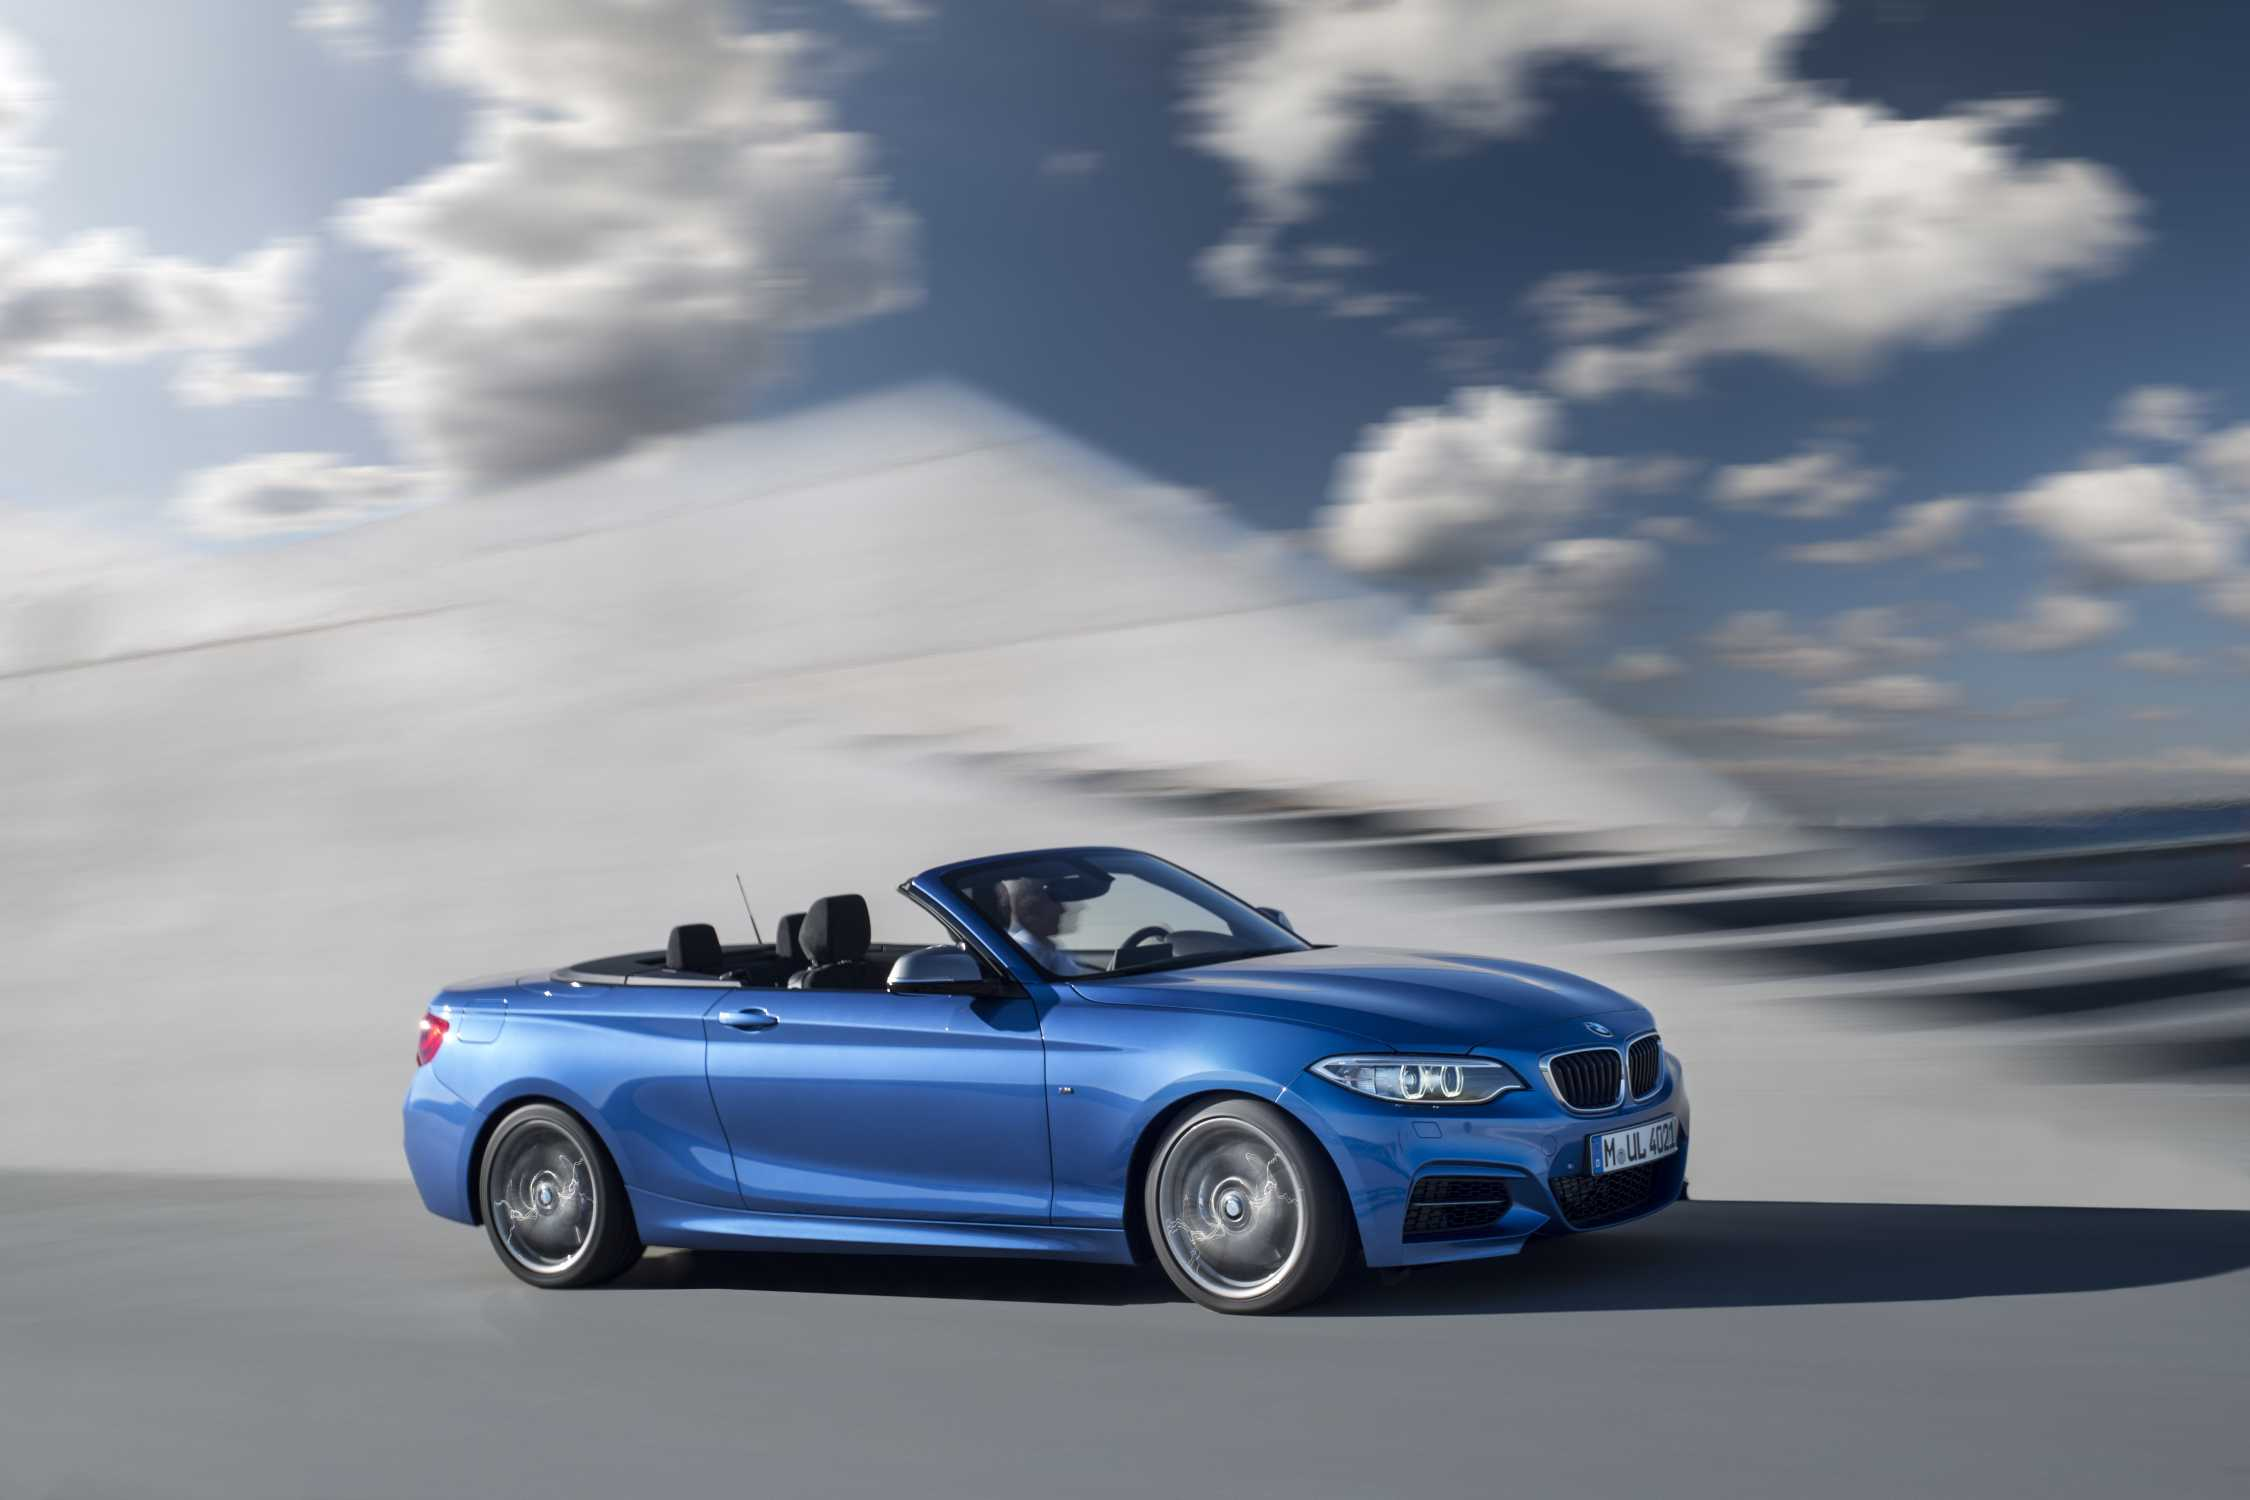 produktionsstart des bmw 2er cabrio in leipzig. Black Bedroom Furniture Sets. Home Design Ideas